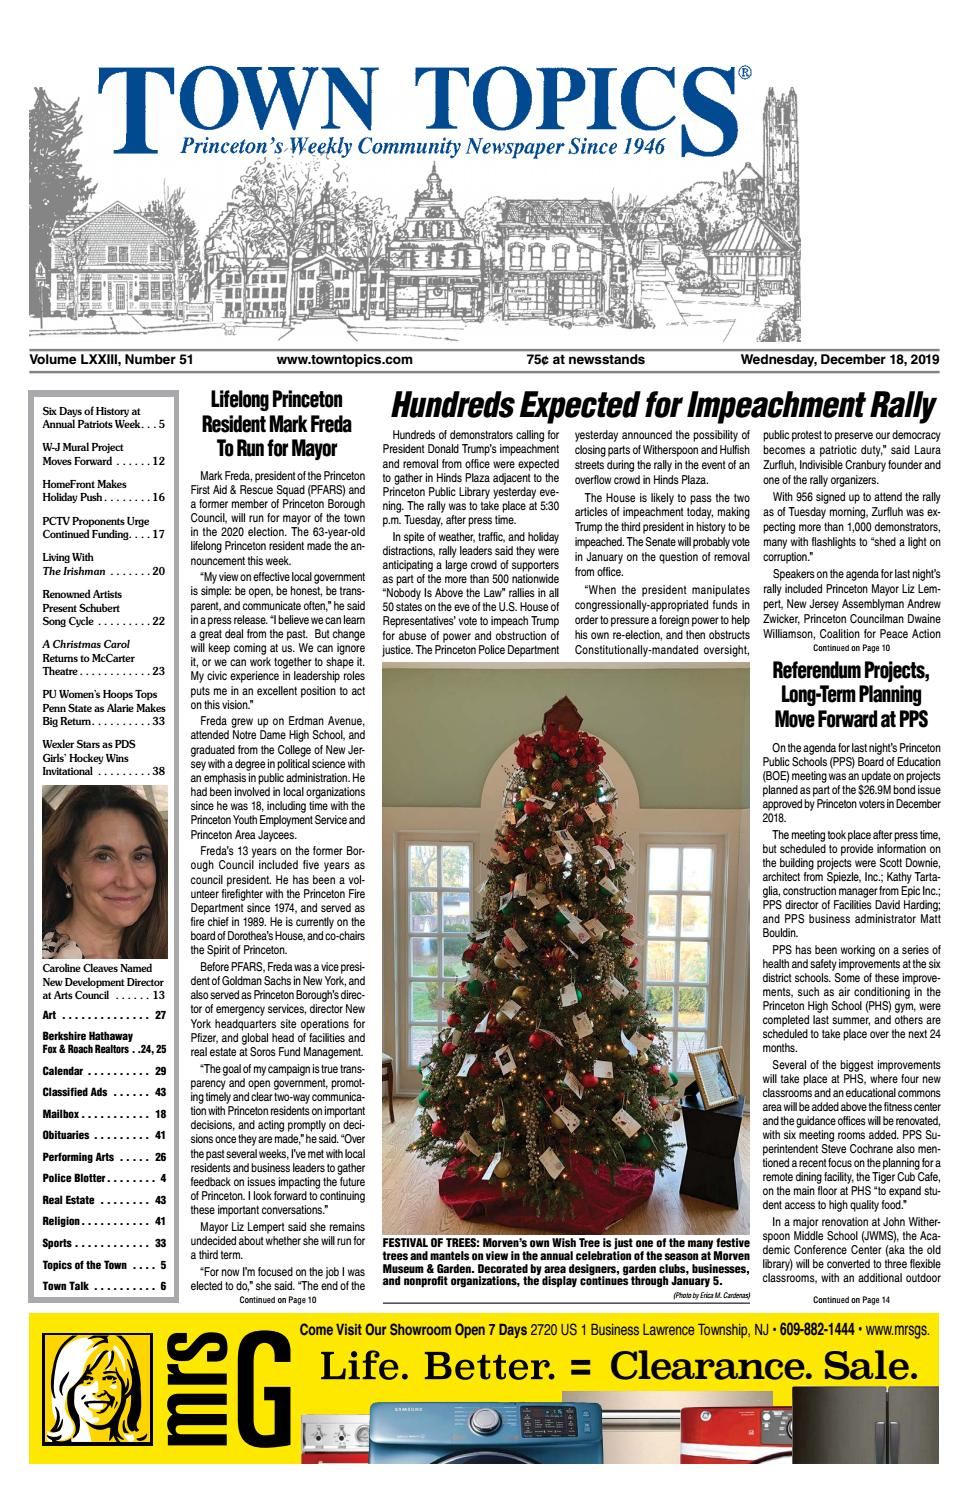 Christmas Brunch Near Me 2020 08534 Town Topics Newspaper, December 18 by Witherspoon Media Group   issuu